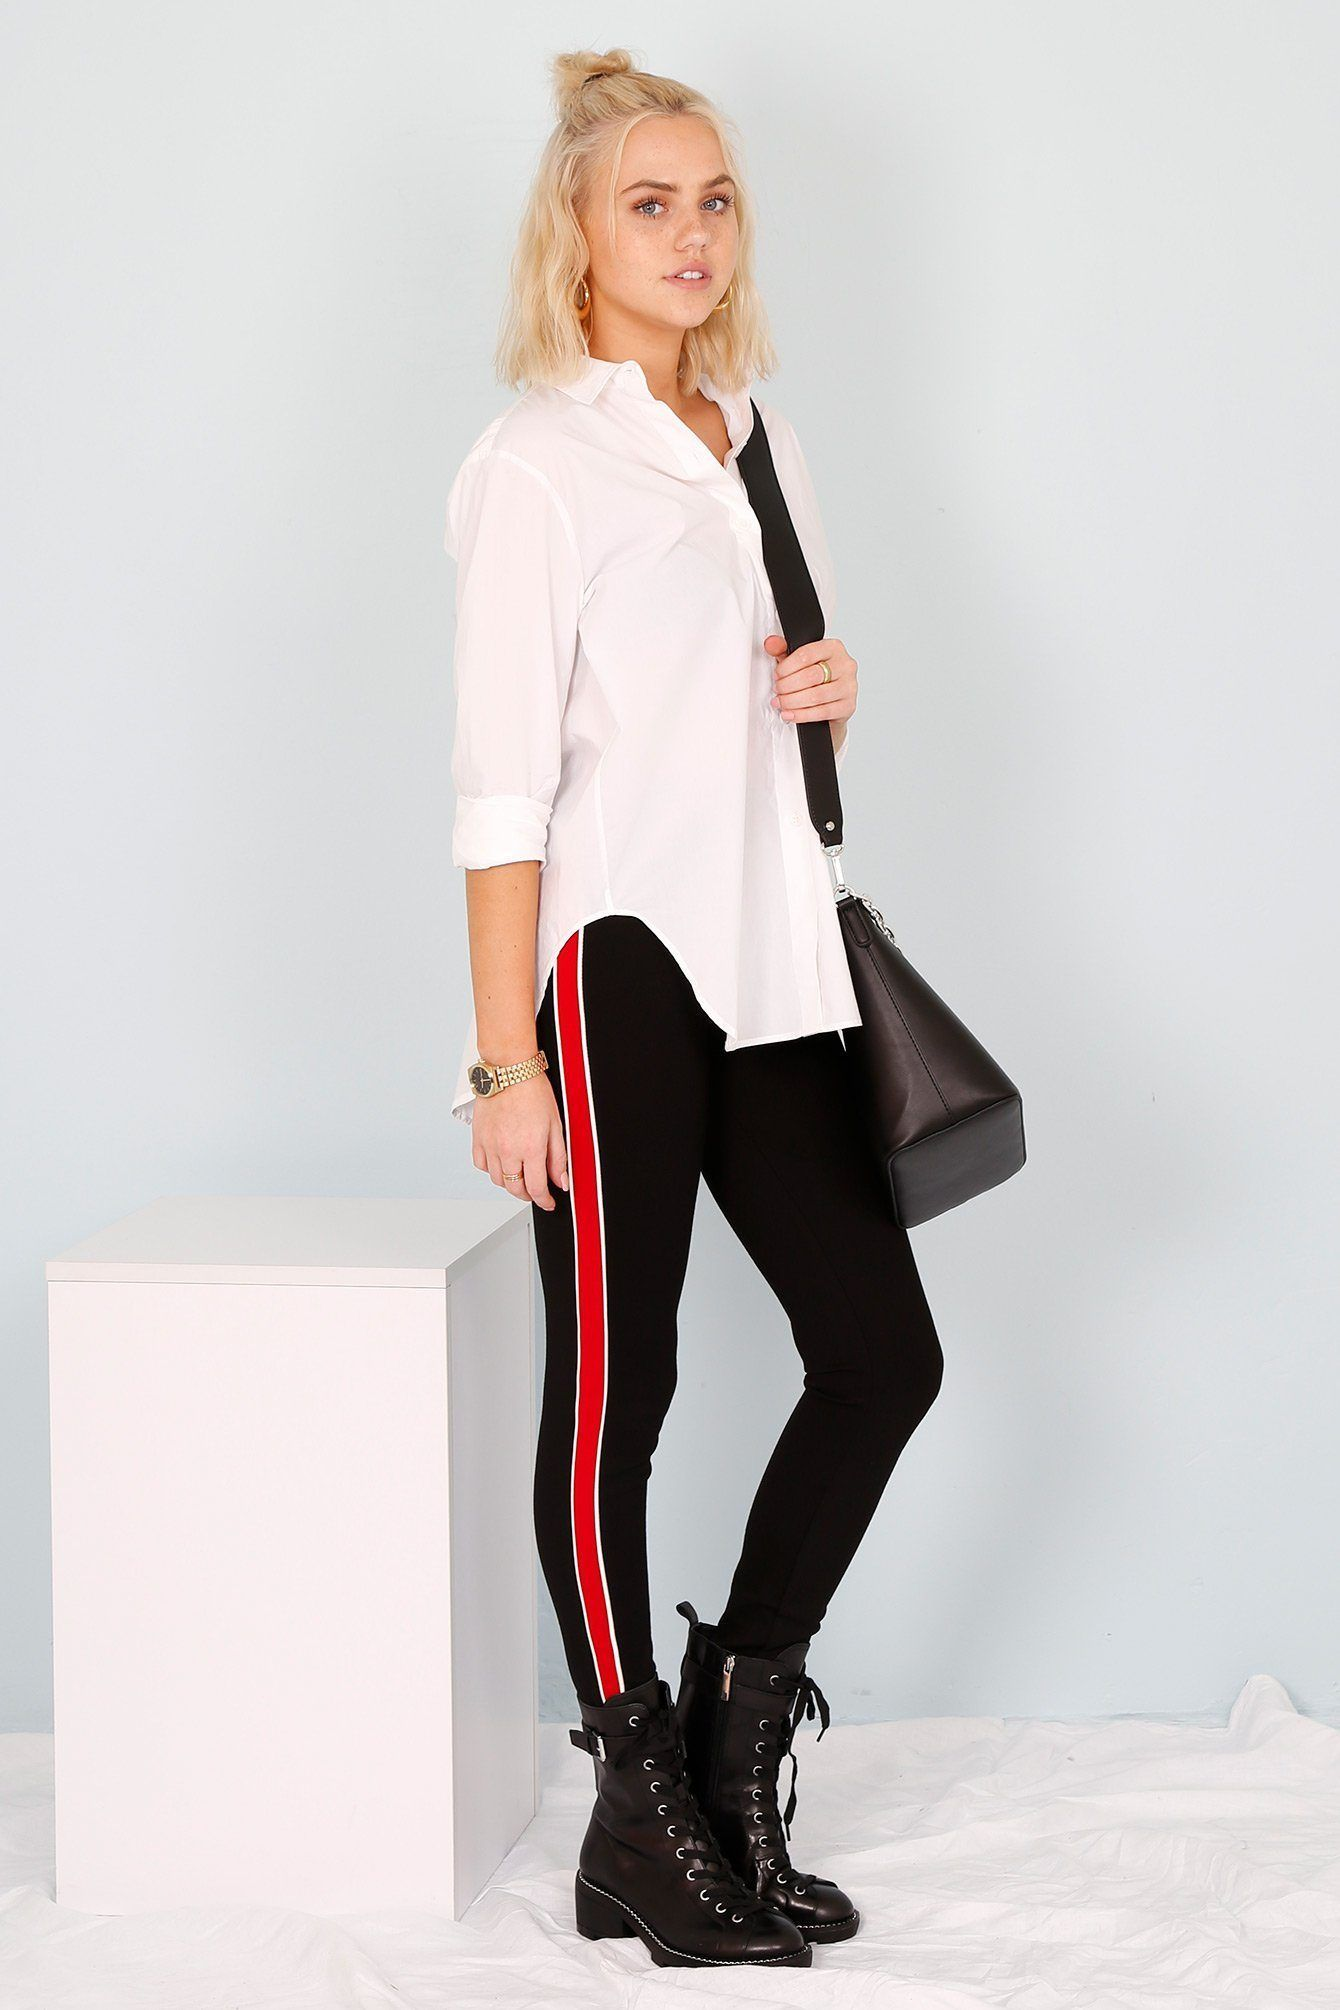 7f08f90bc3457 Can't Change My Stripe Pant - Black + Red | My style | Black ...